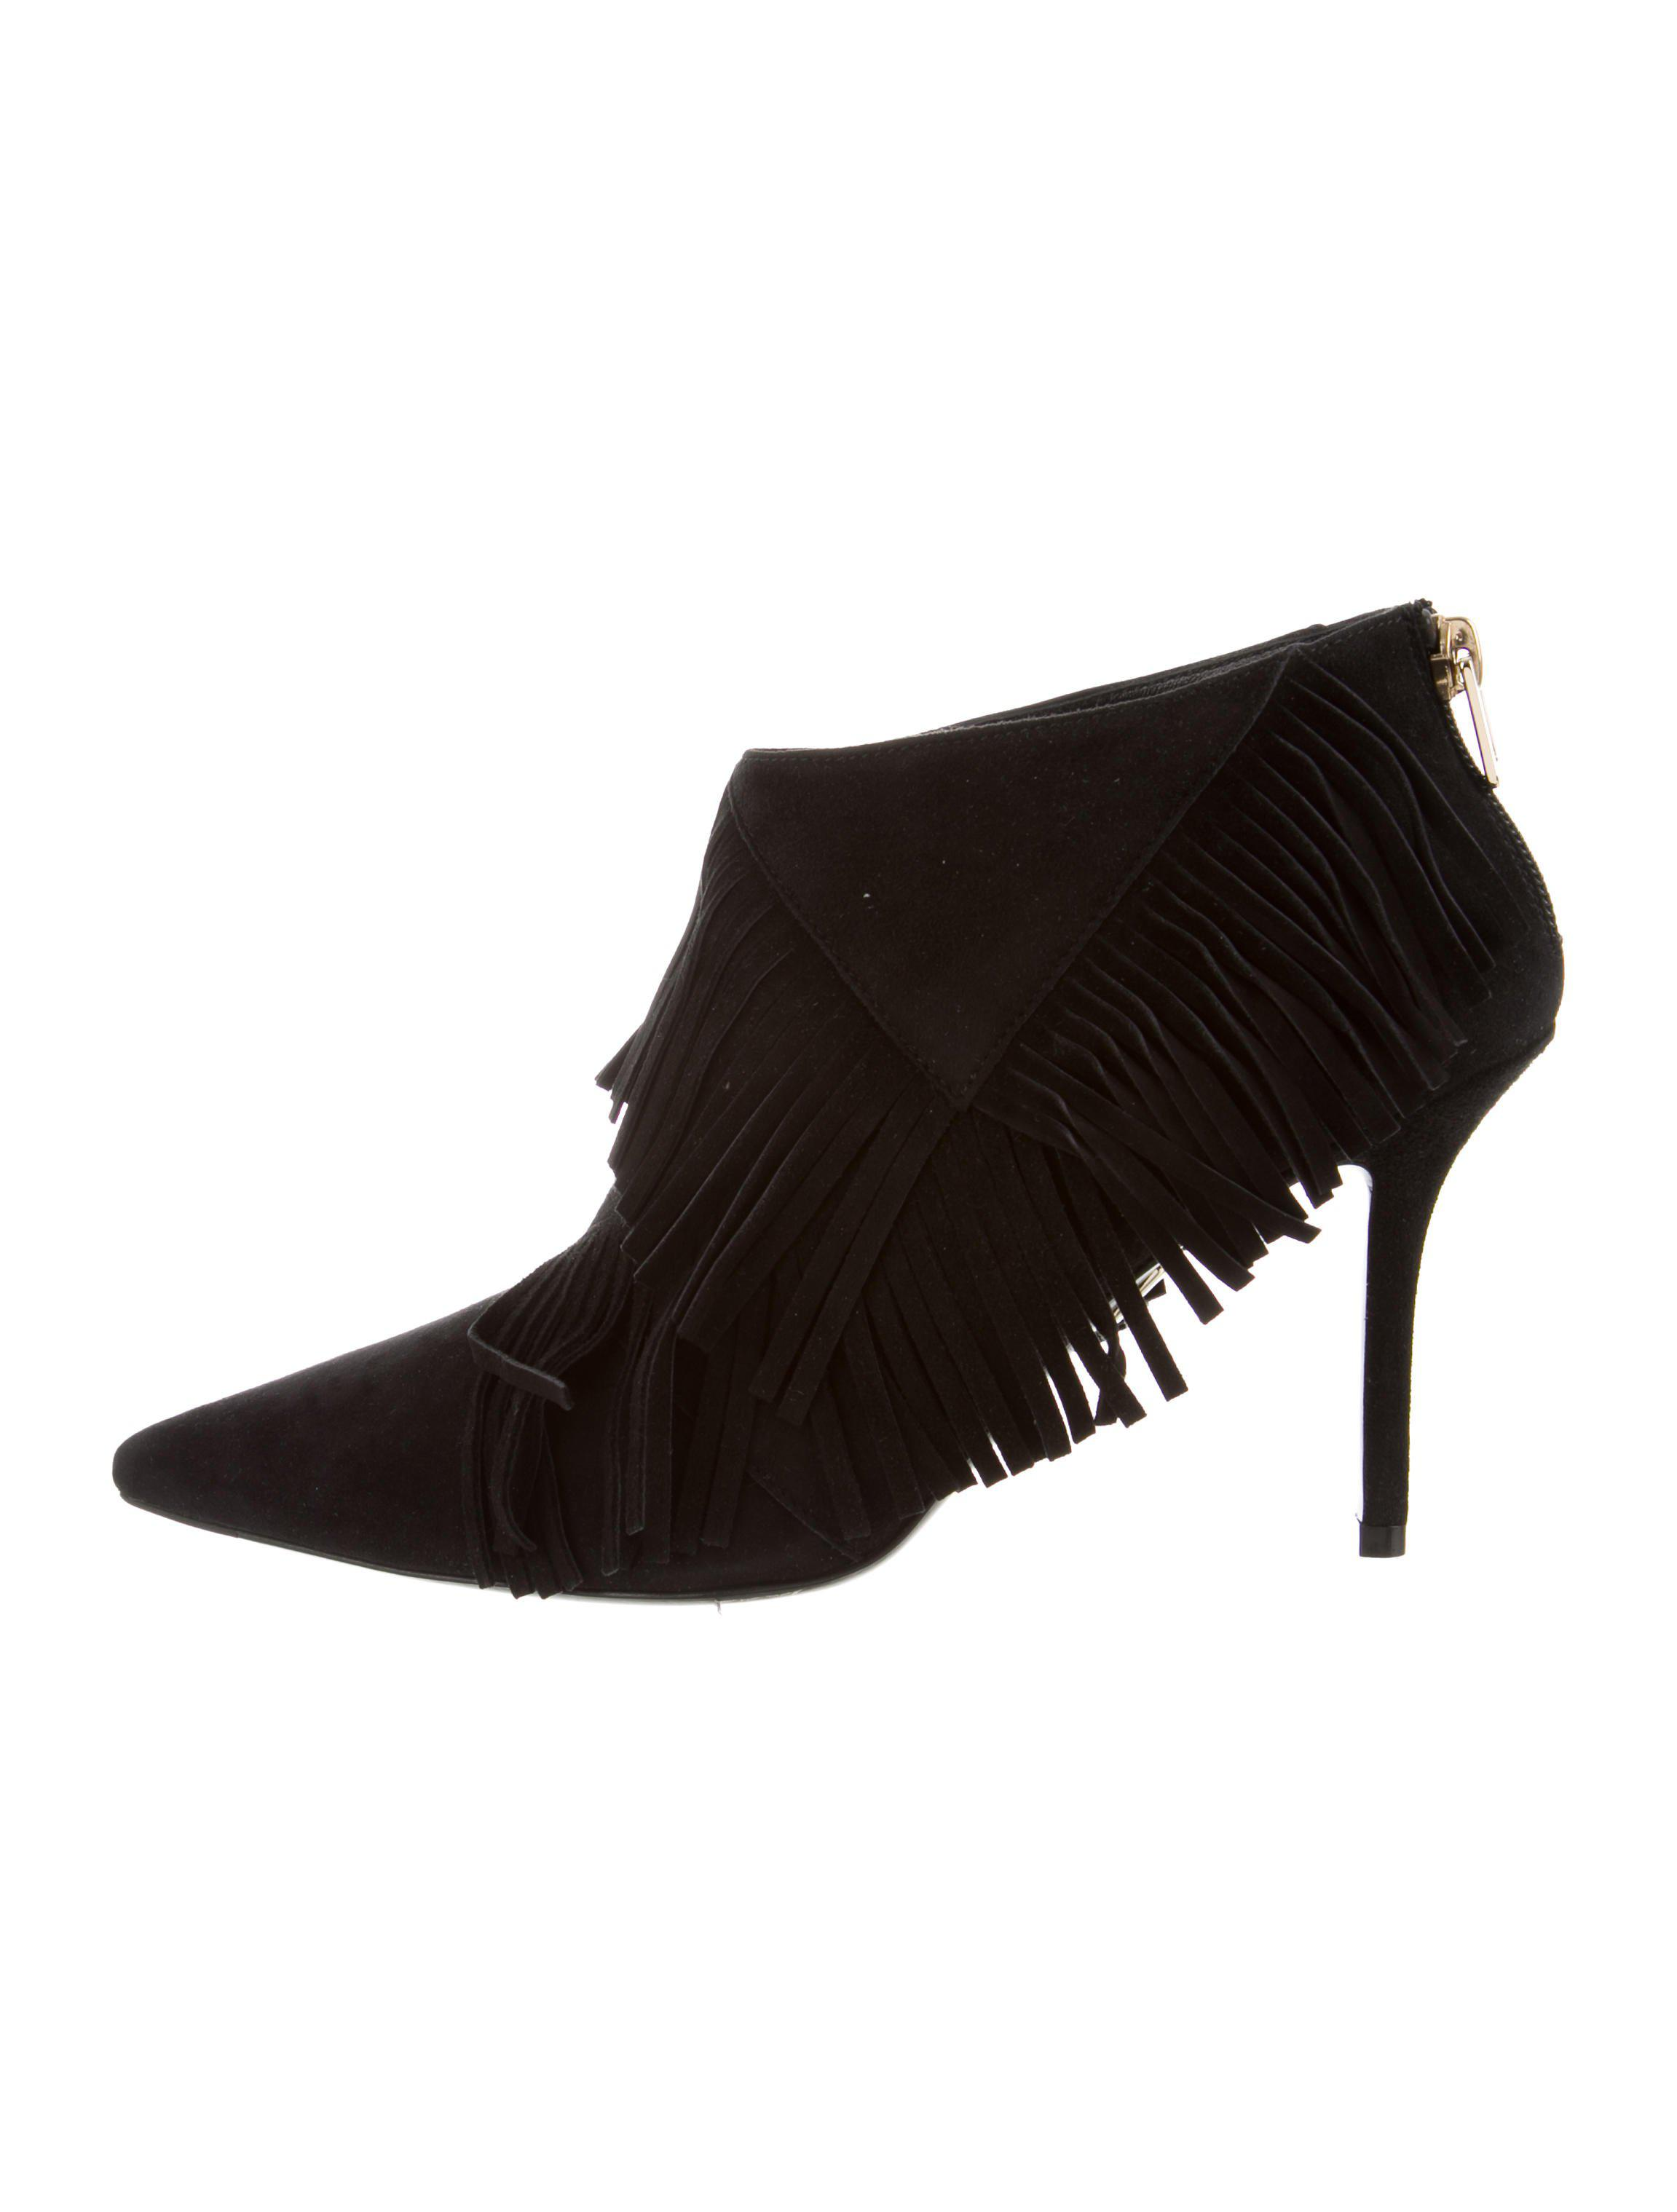 Roger Vivier Pointed-Toe Fringe Booties w/ Tags with paypal for sale 0q4kcwL93v